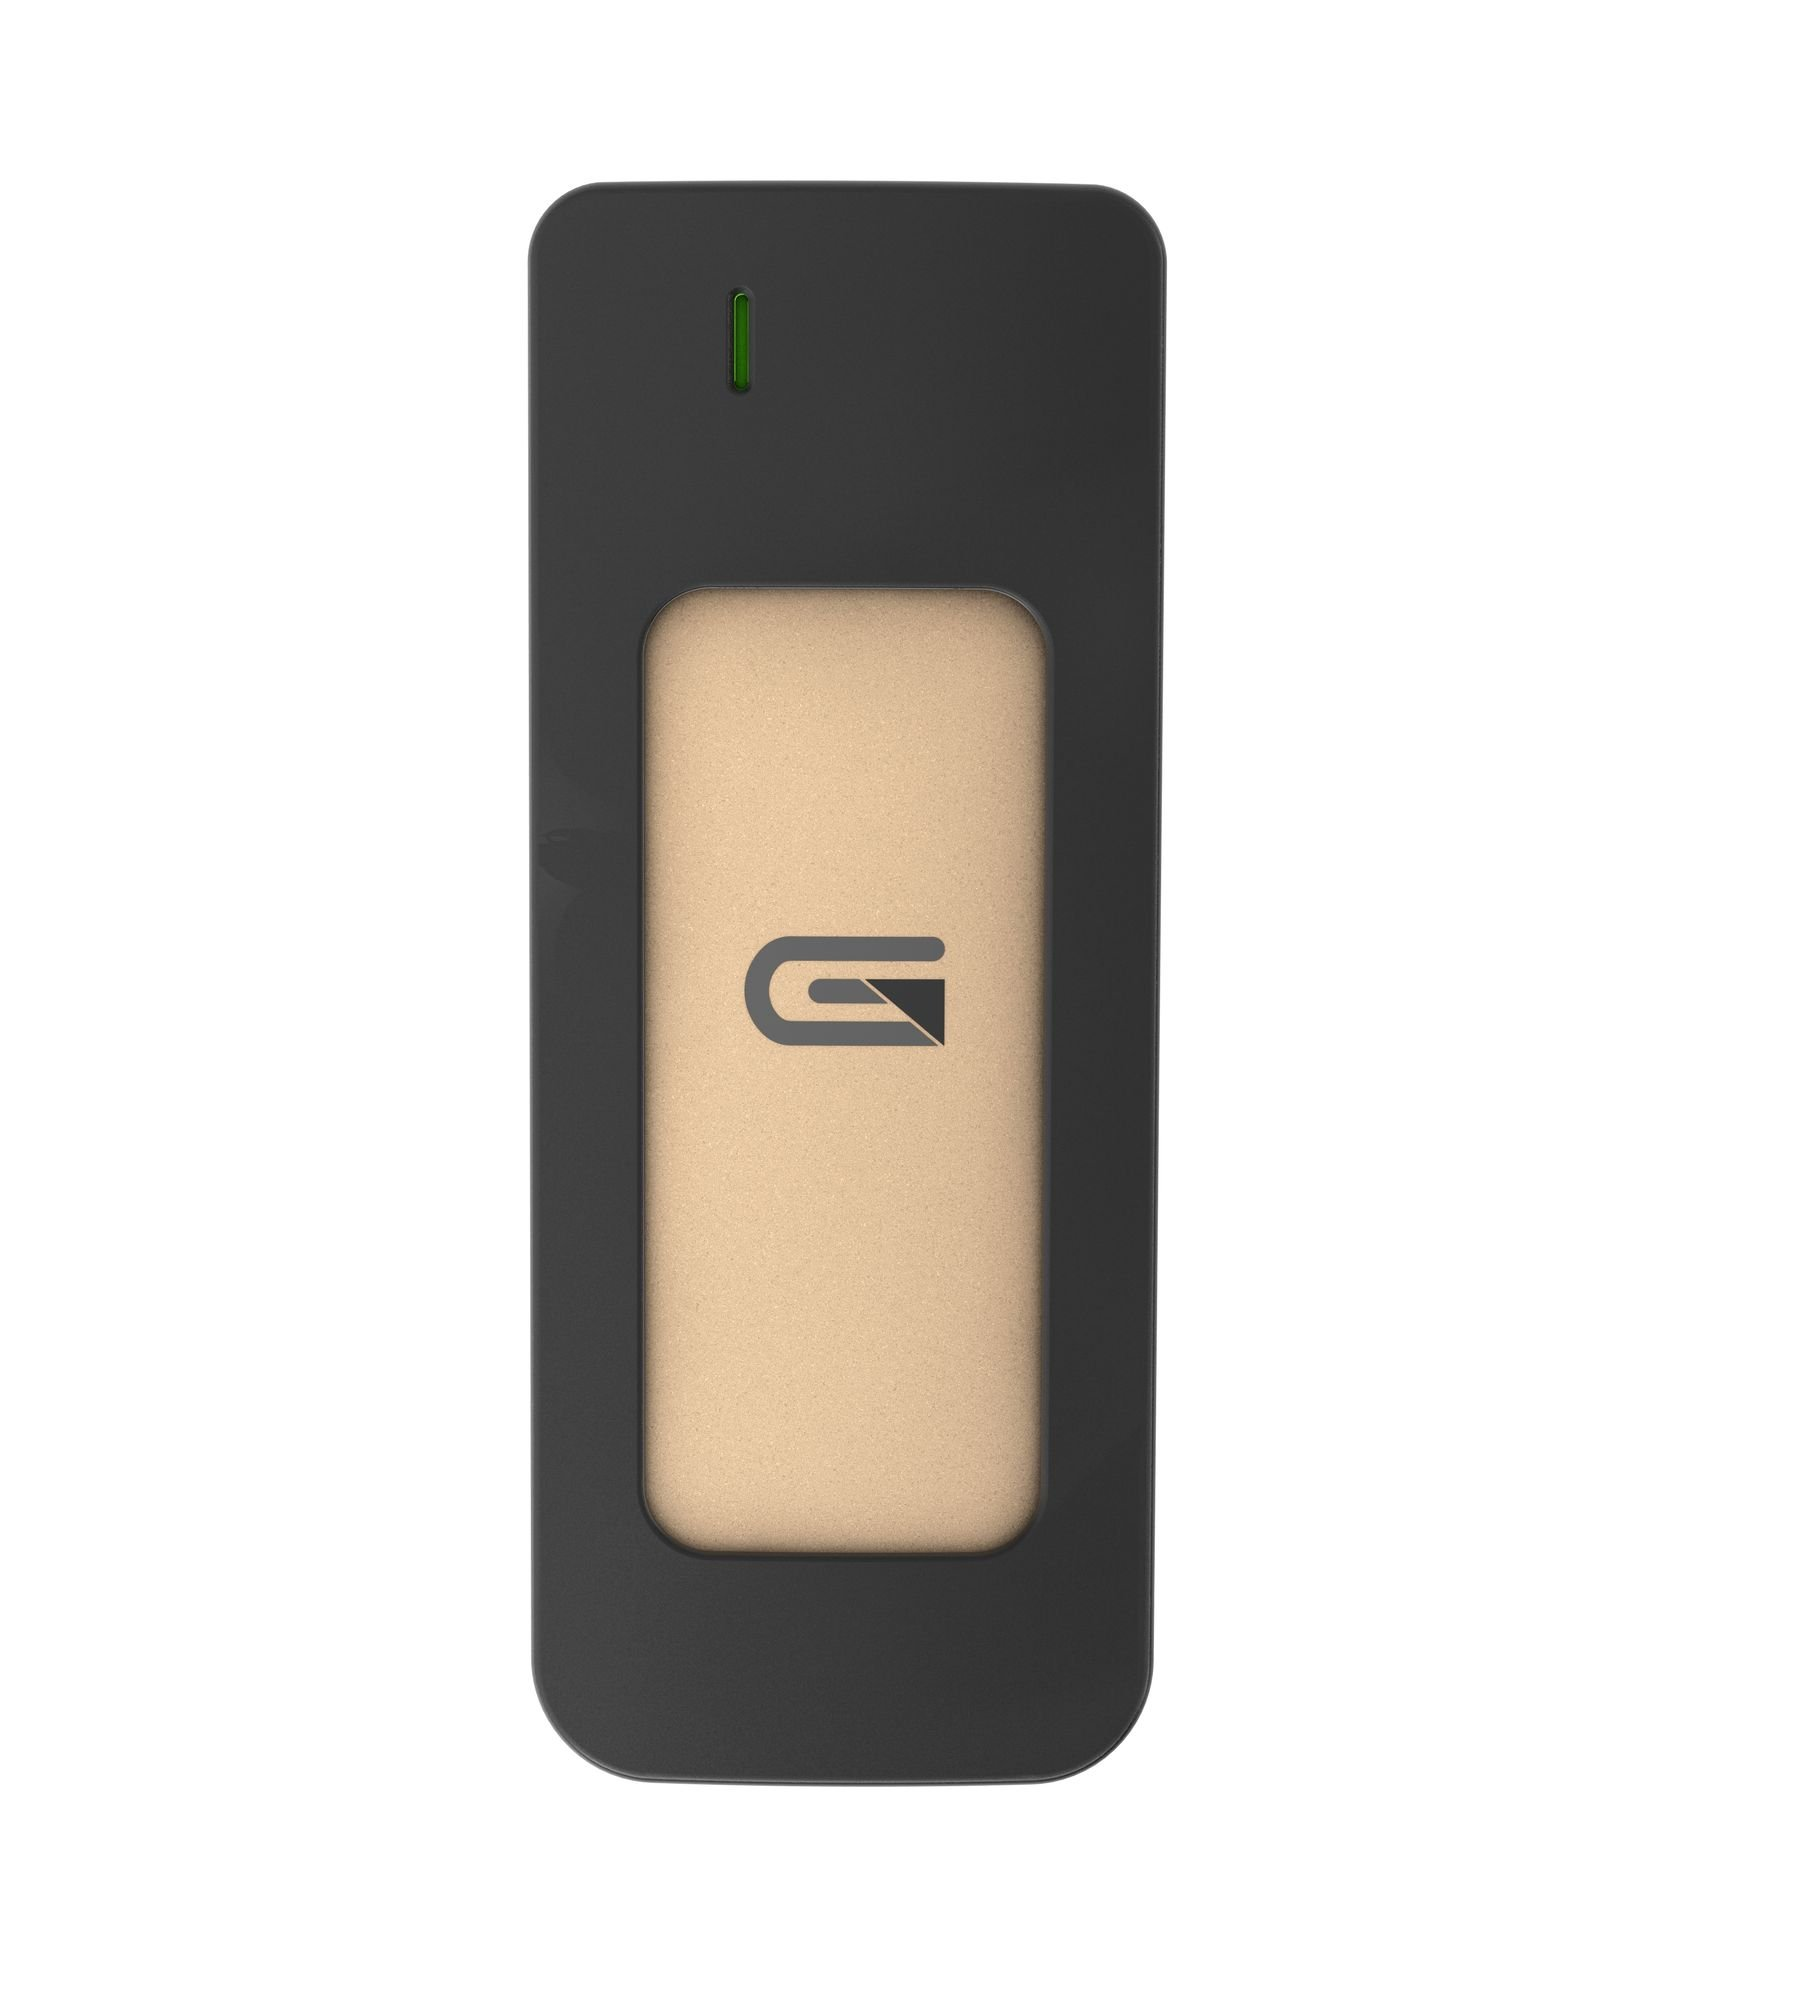 Glyph Atom Gold, 1TB SSD, USB-C (3.1, Gen 2), USB 3.0, Compatible with Thunderbolt 3